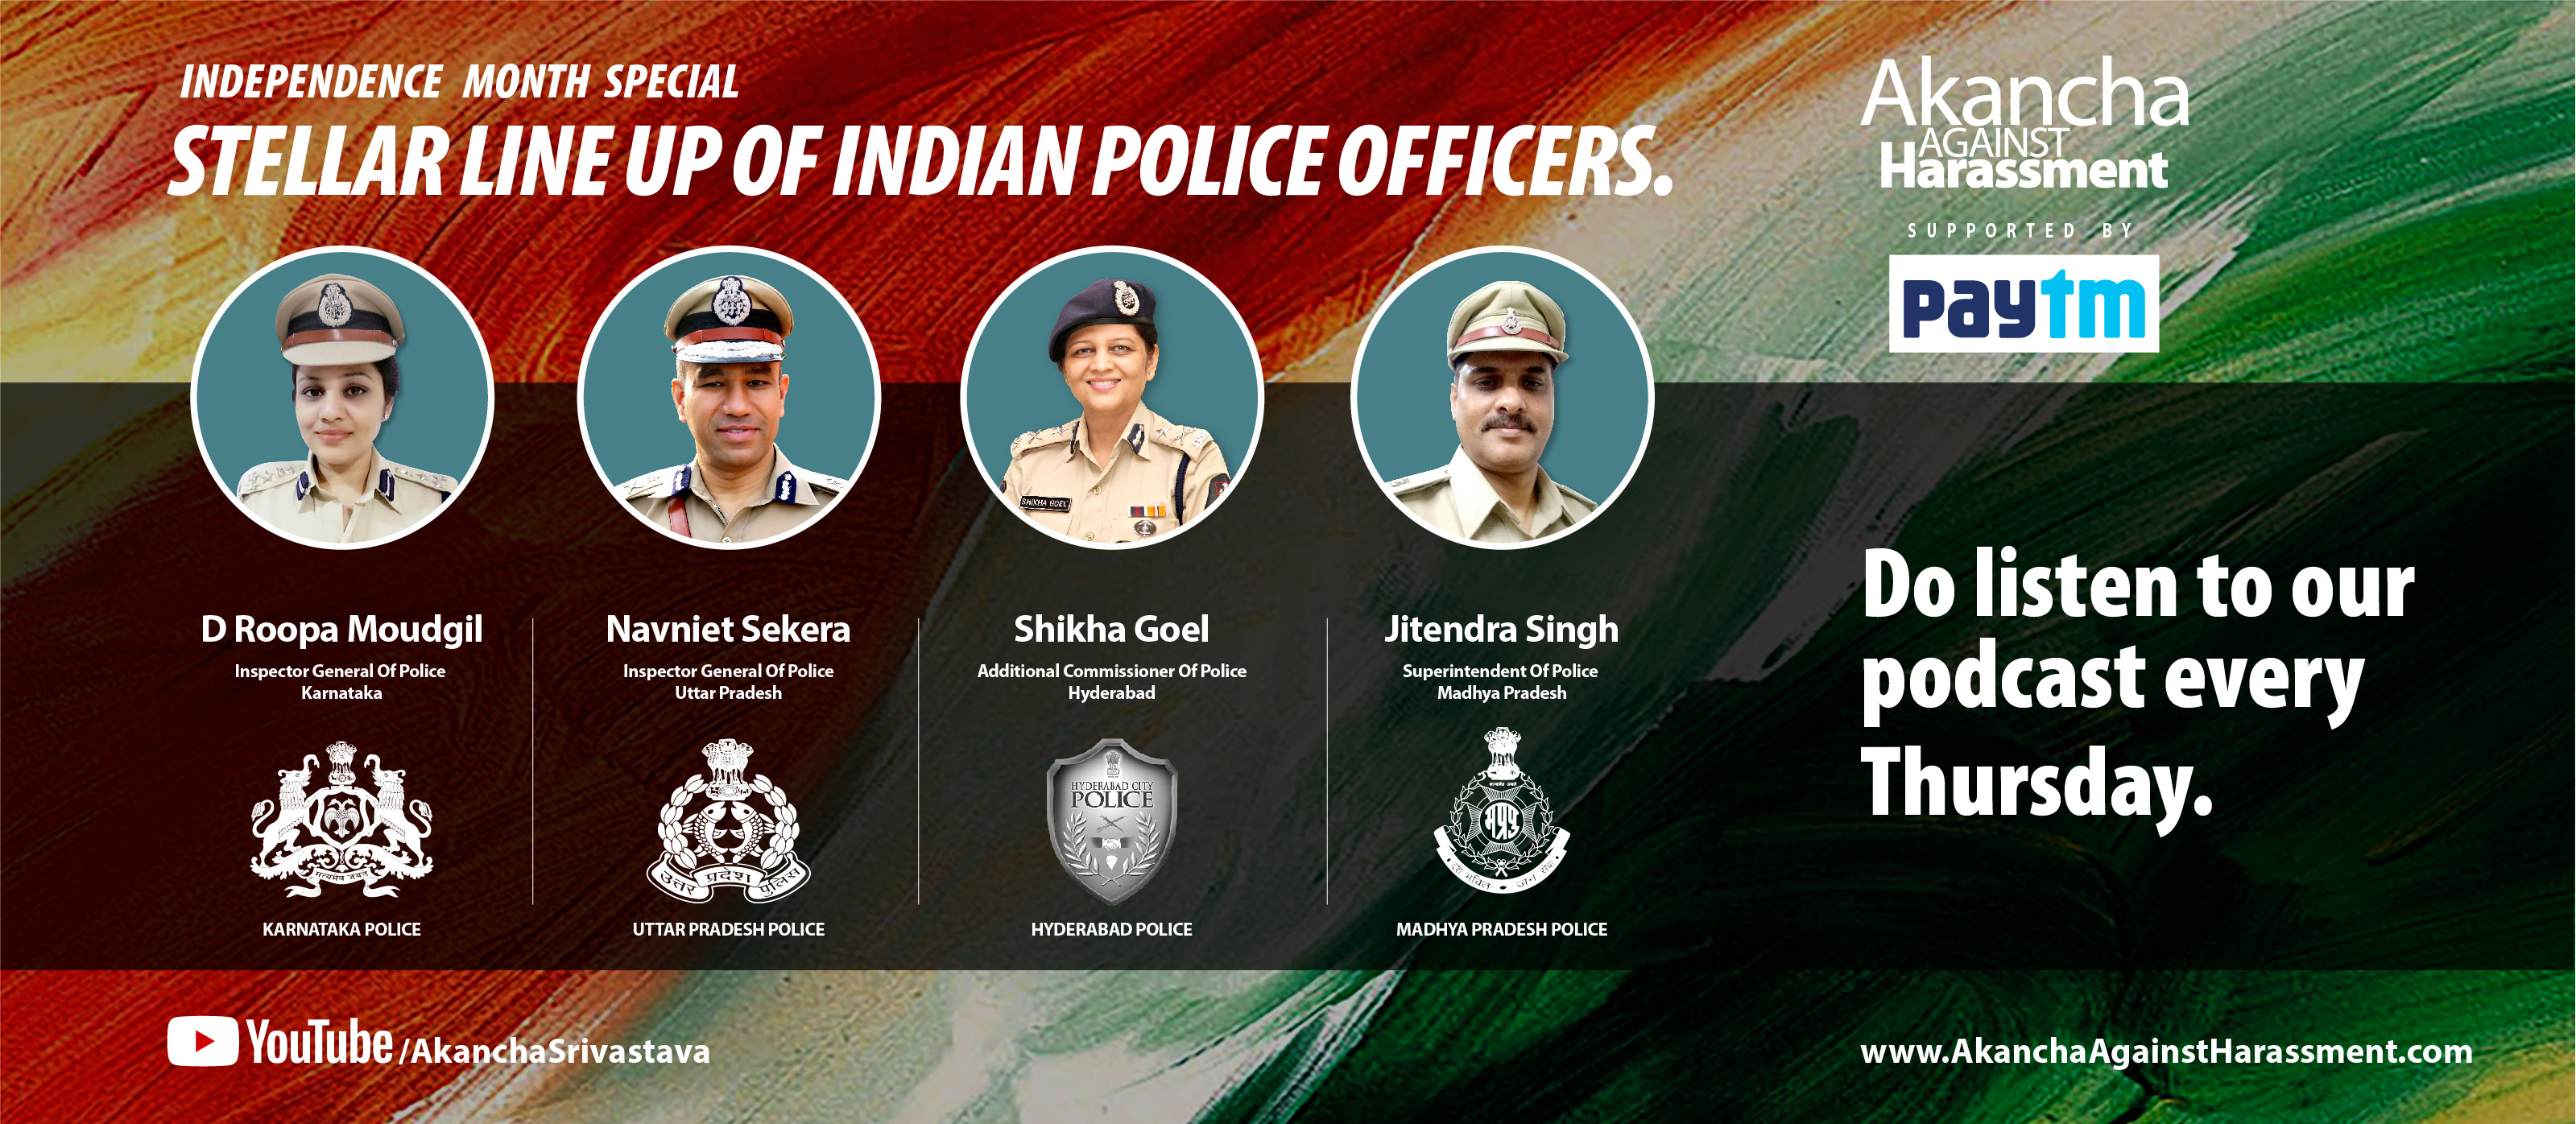 Independence Month Special With These Indian Police Officers!